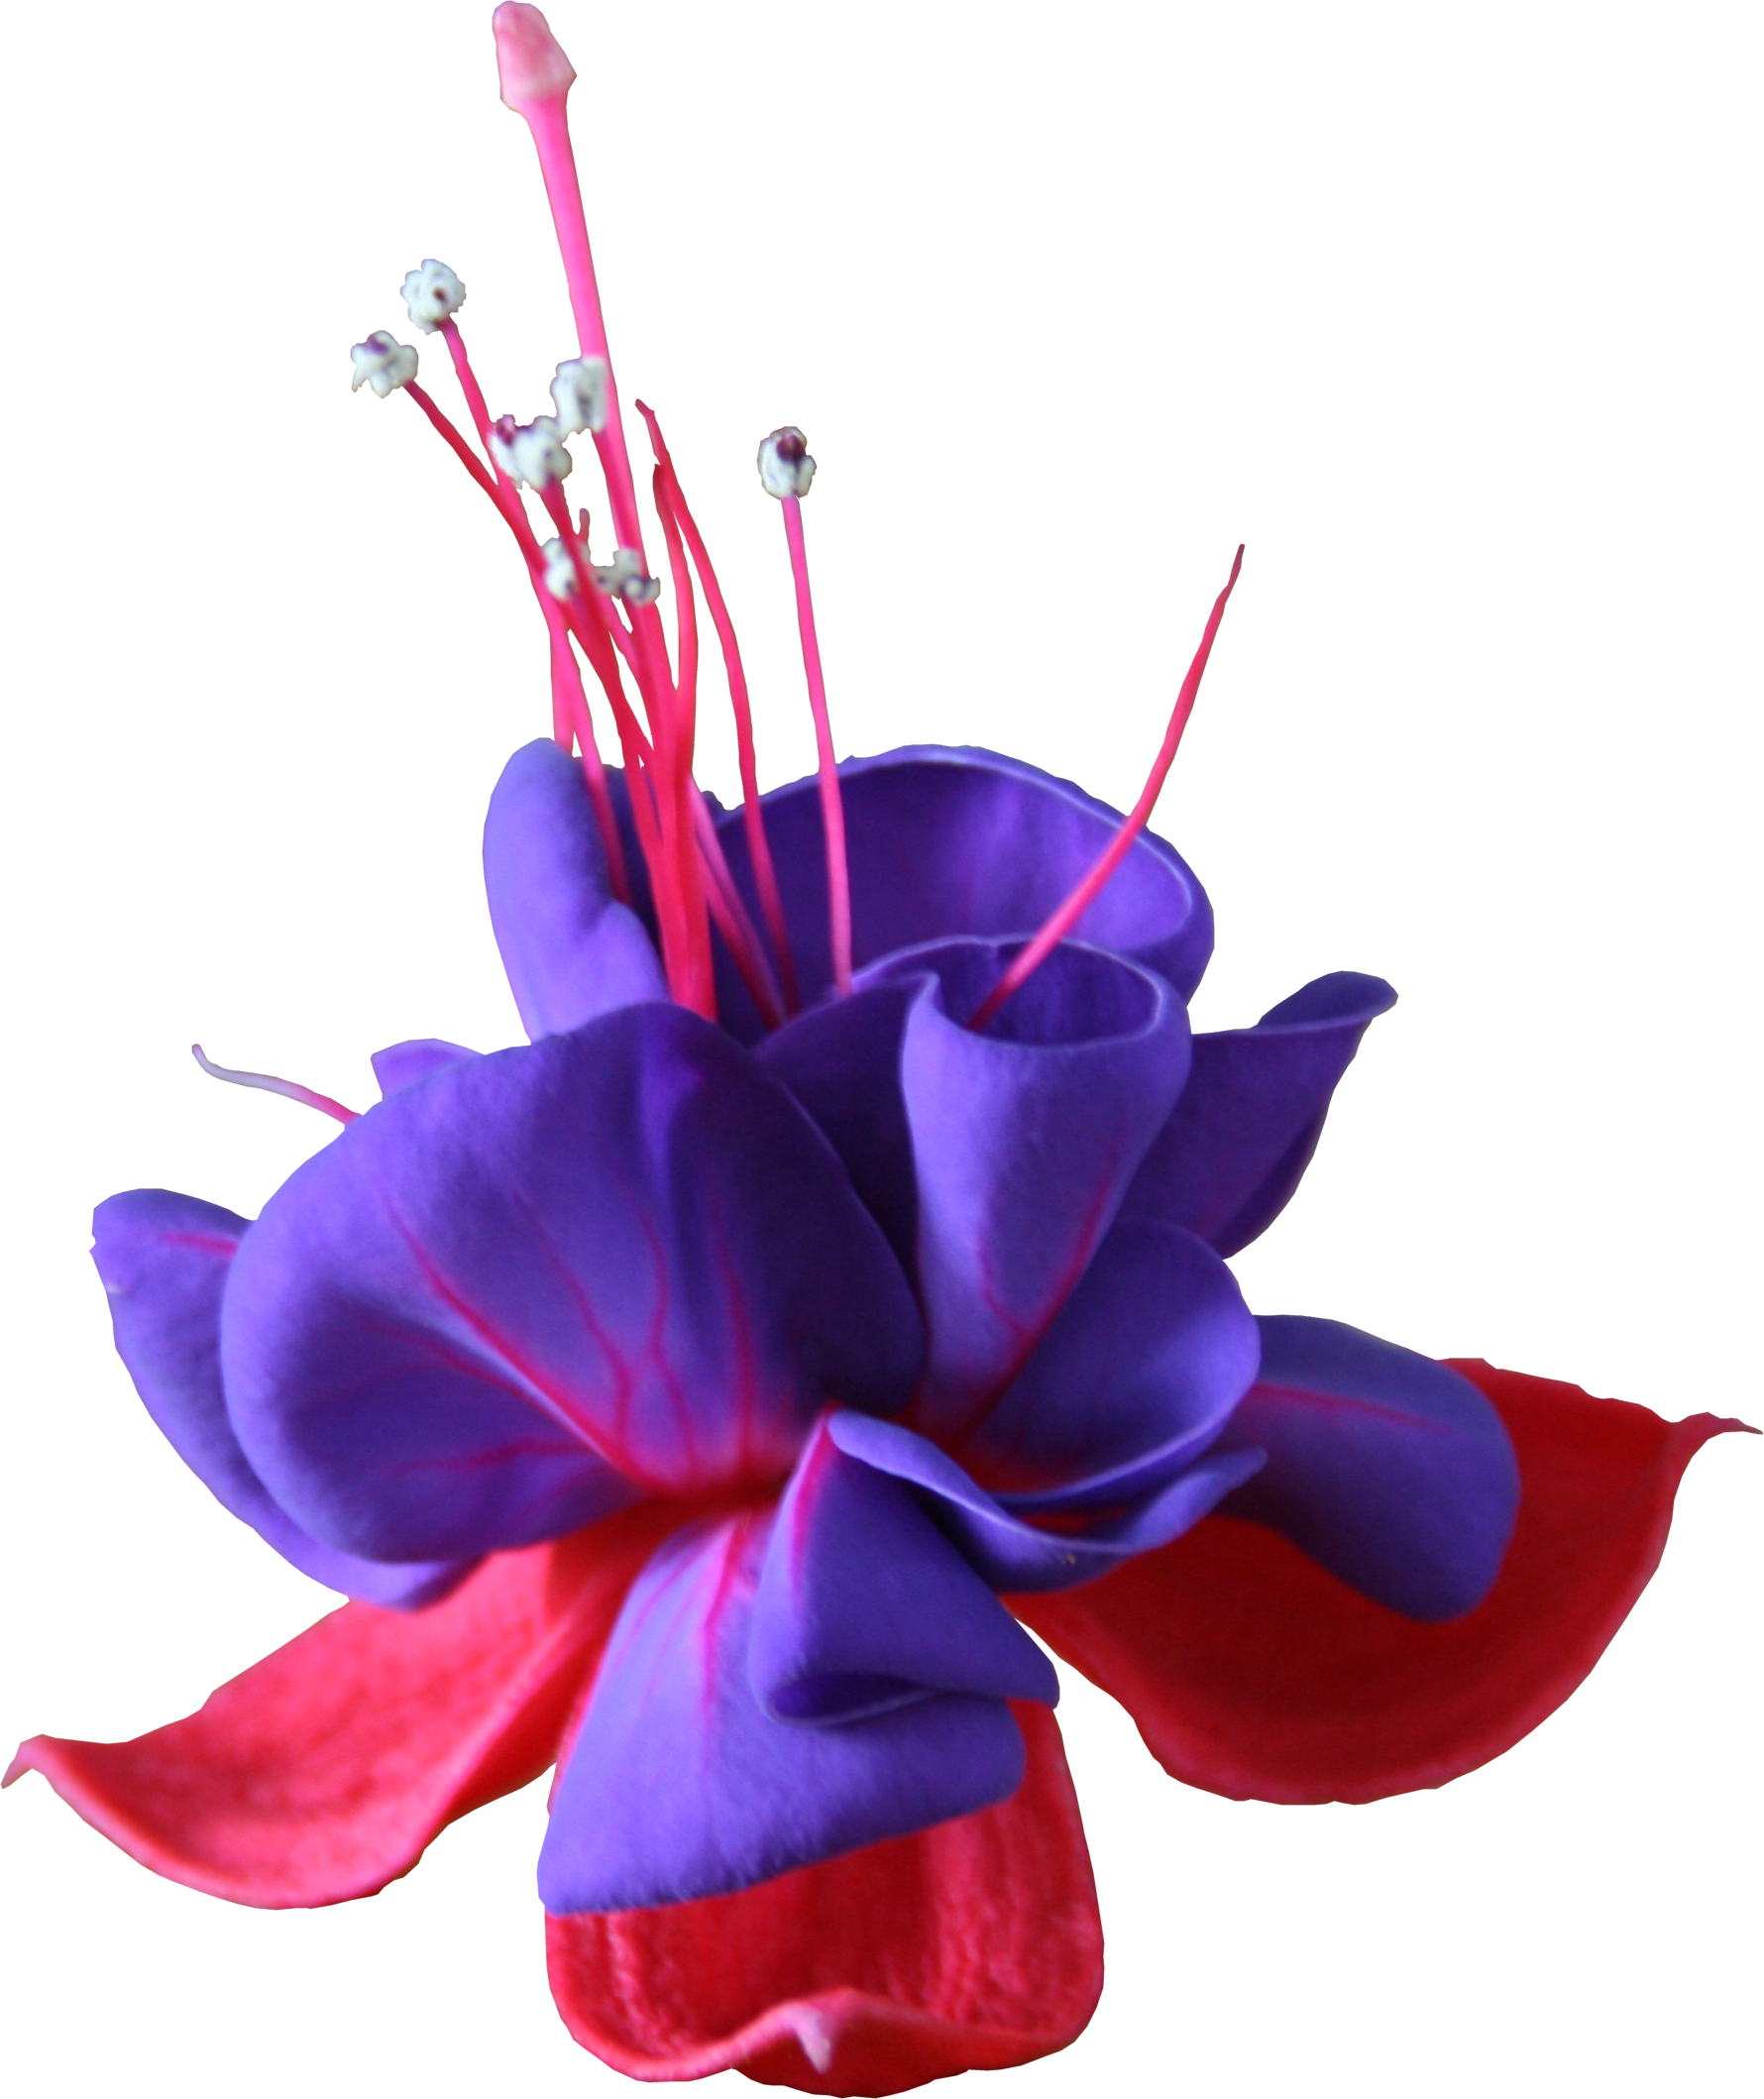 Fuchsia flower png. Fuschia flowers transparent images